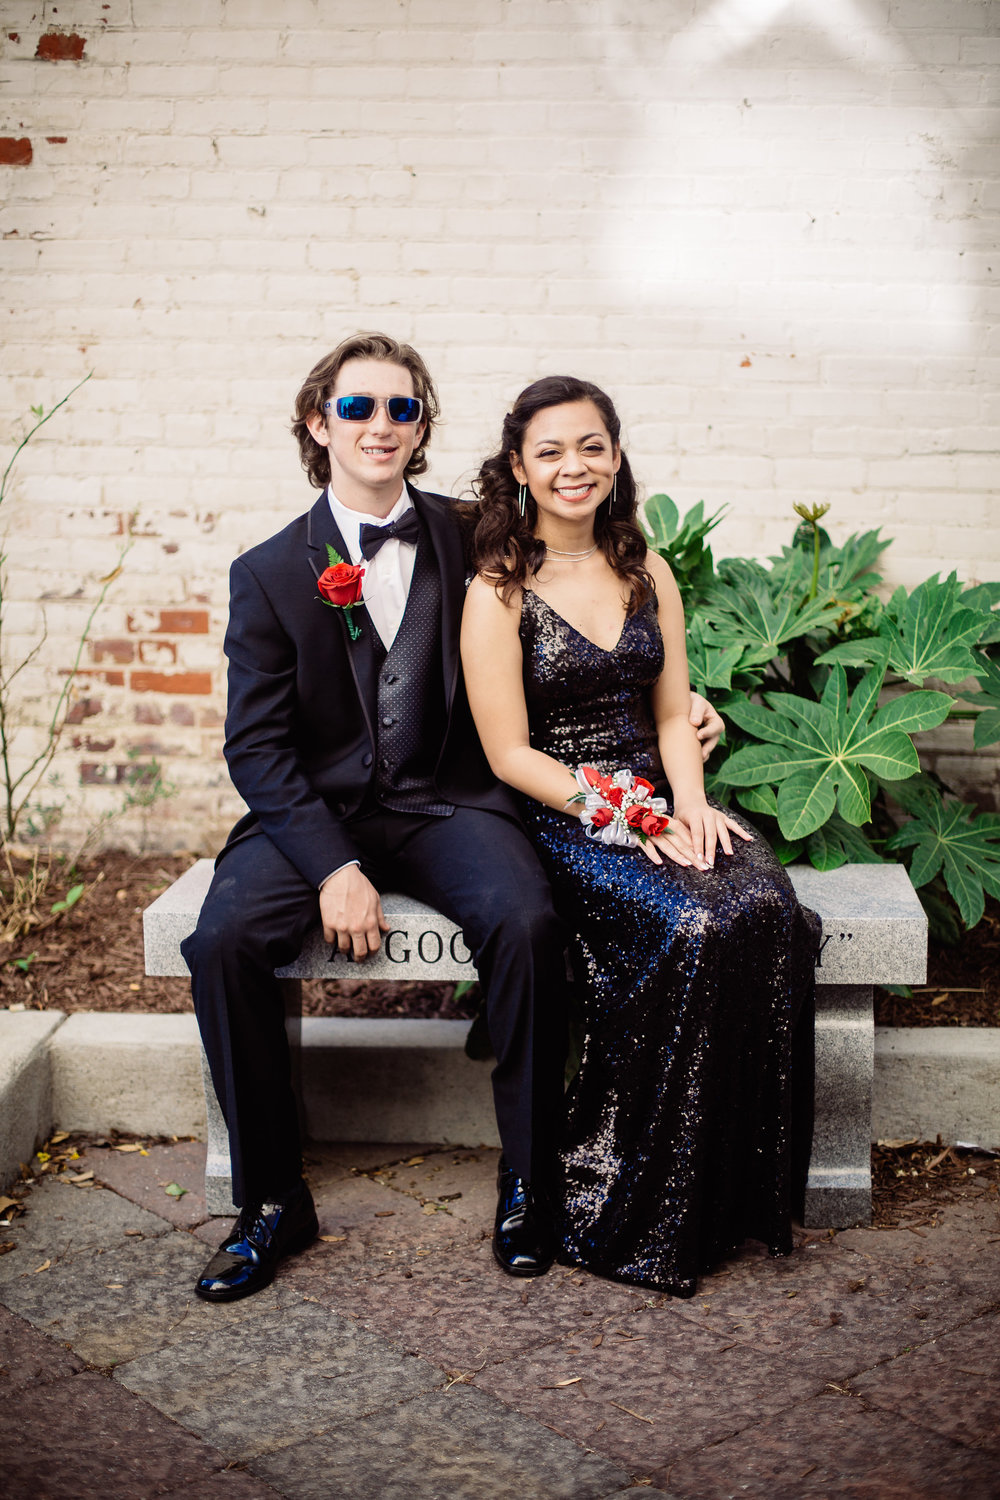 Greenville NC Prom Portraits | A Gift From BTP | Sheila + Dylon | Julius H Rose High School Prom 2017 | Bryant Tyson Photography | www.memoriesbybryant.com